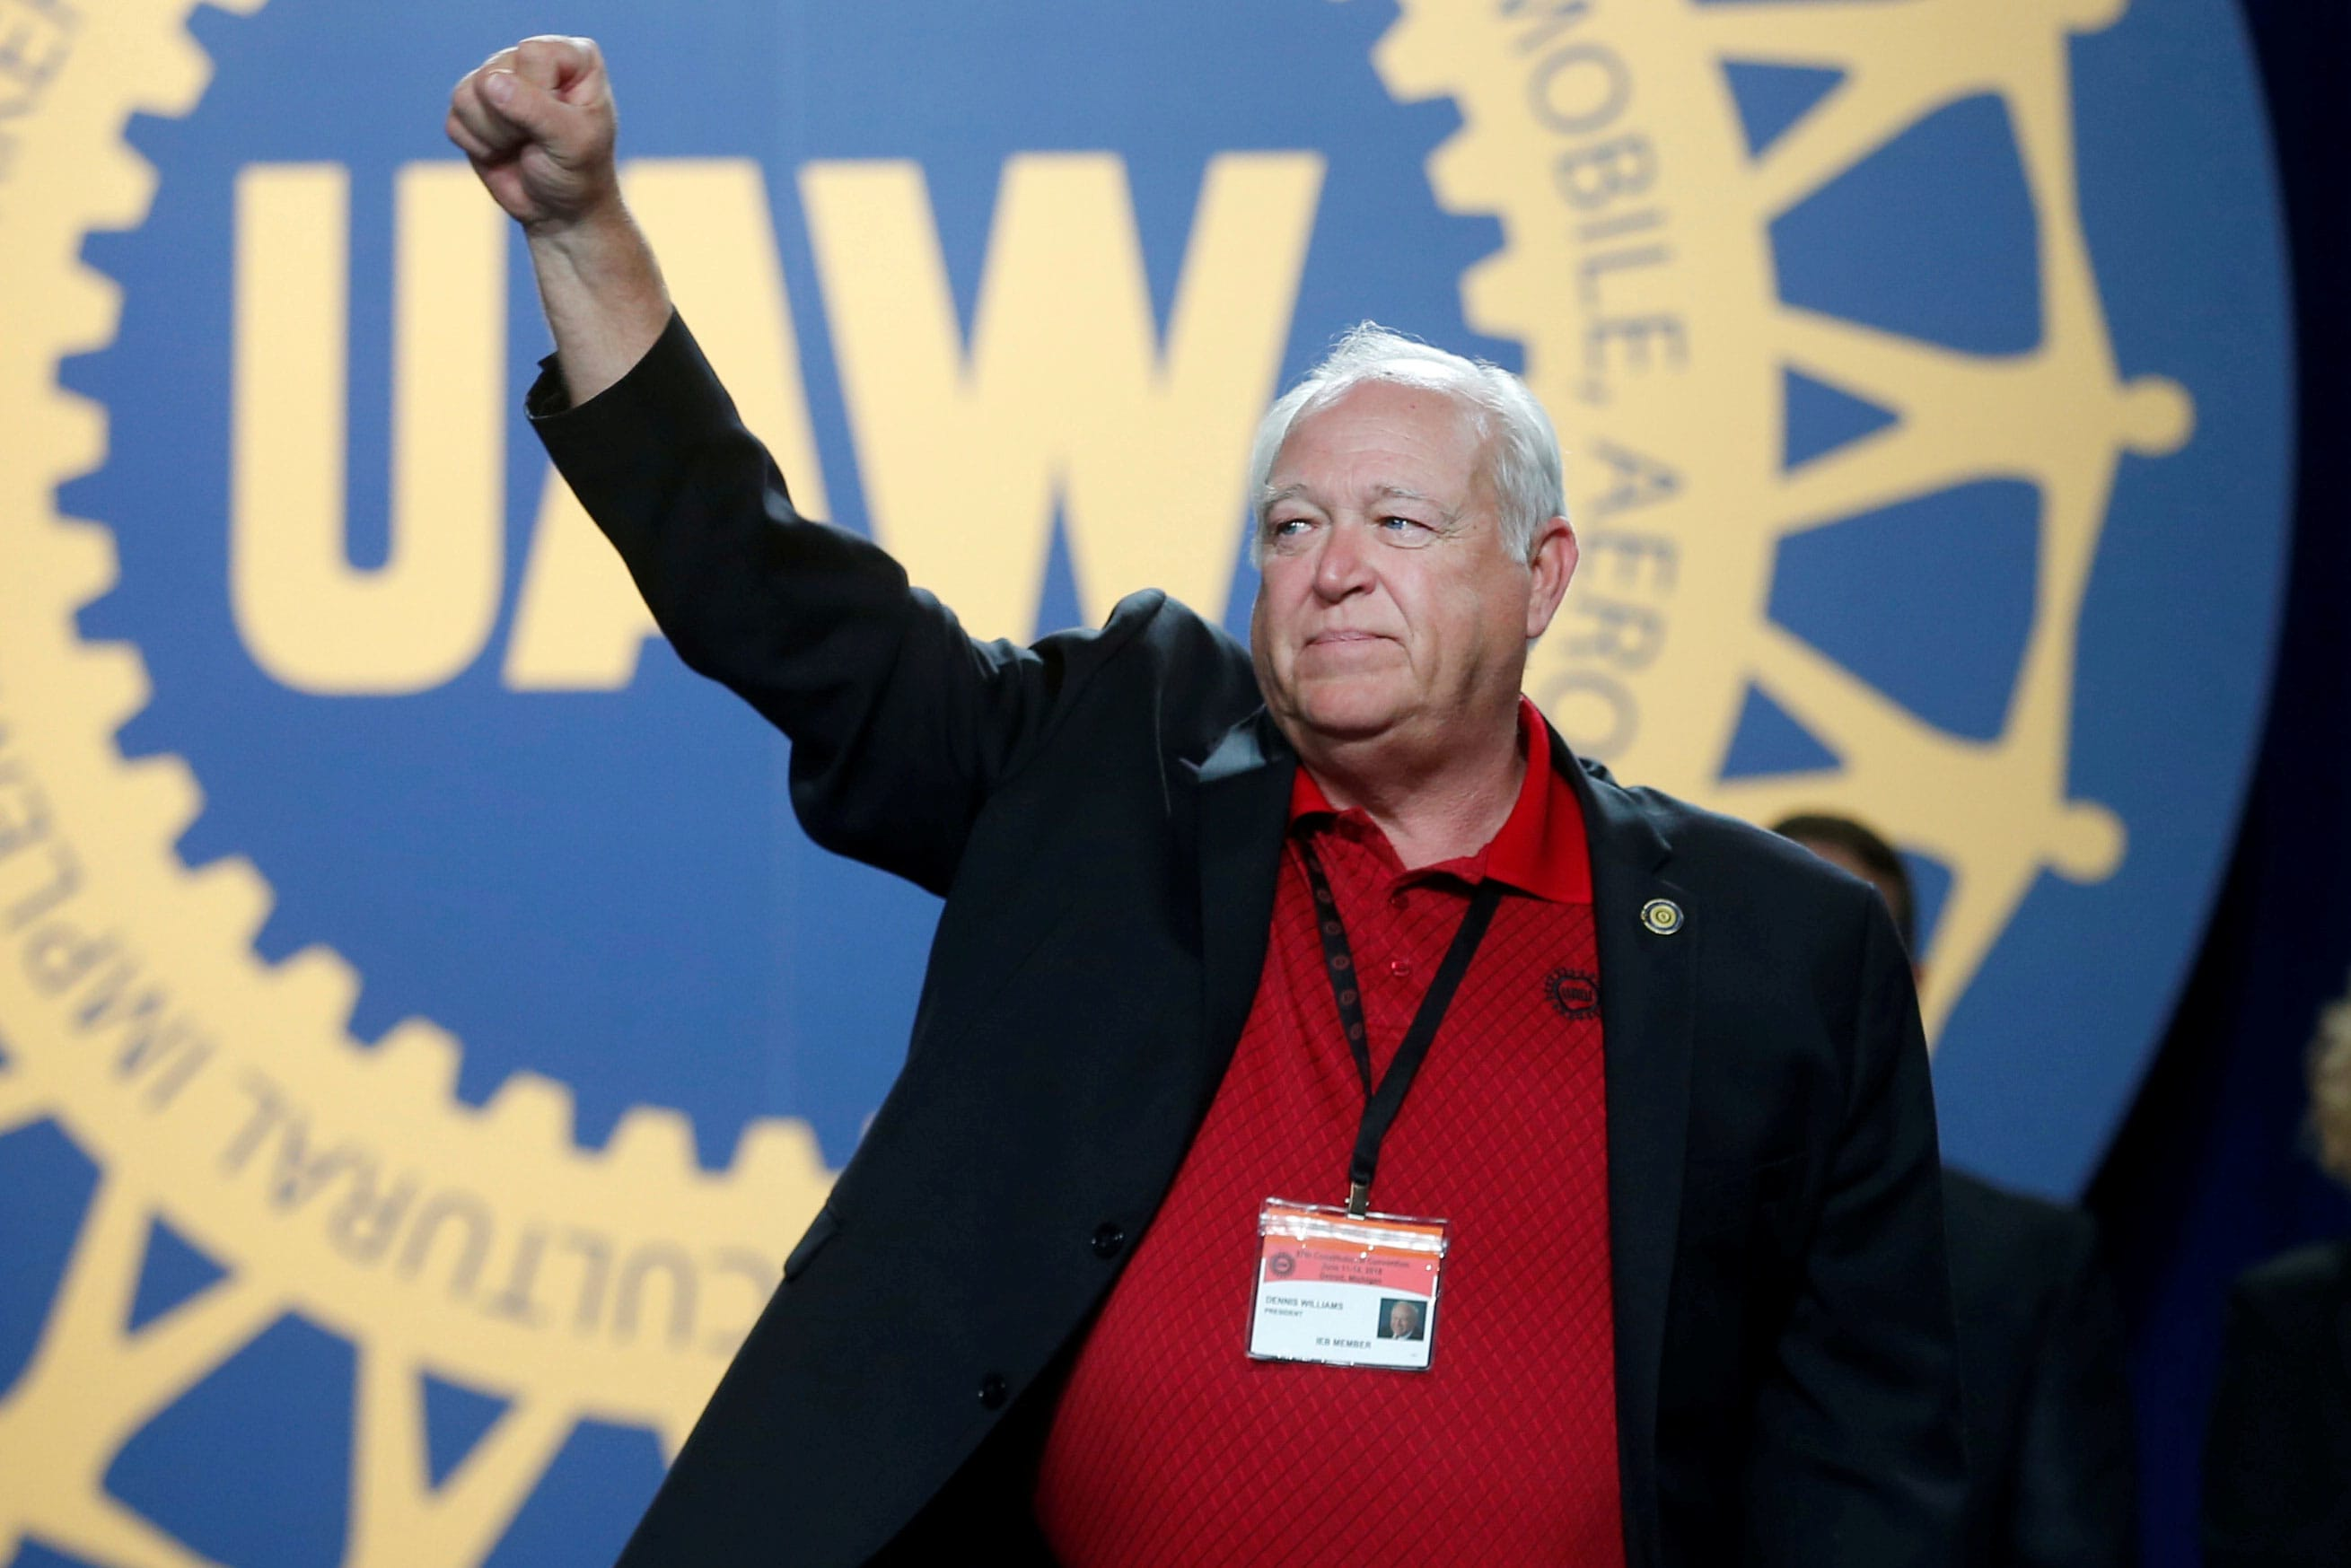 Ex-UAW president sentenced to 21 months in prison in union corruption scheme